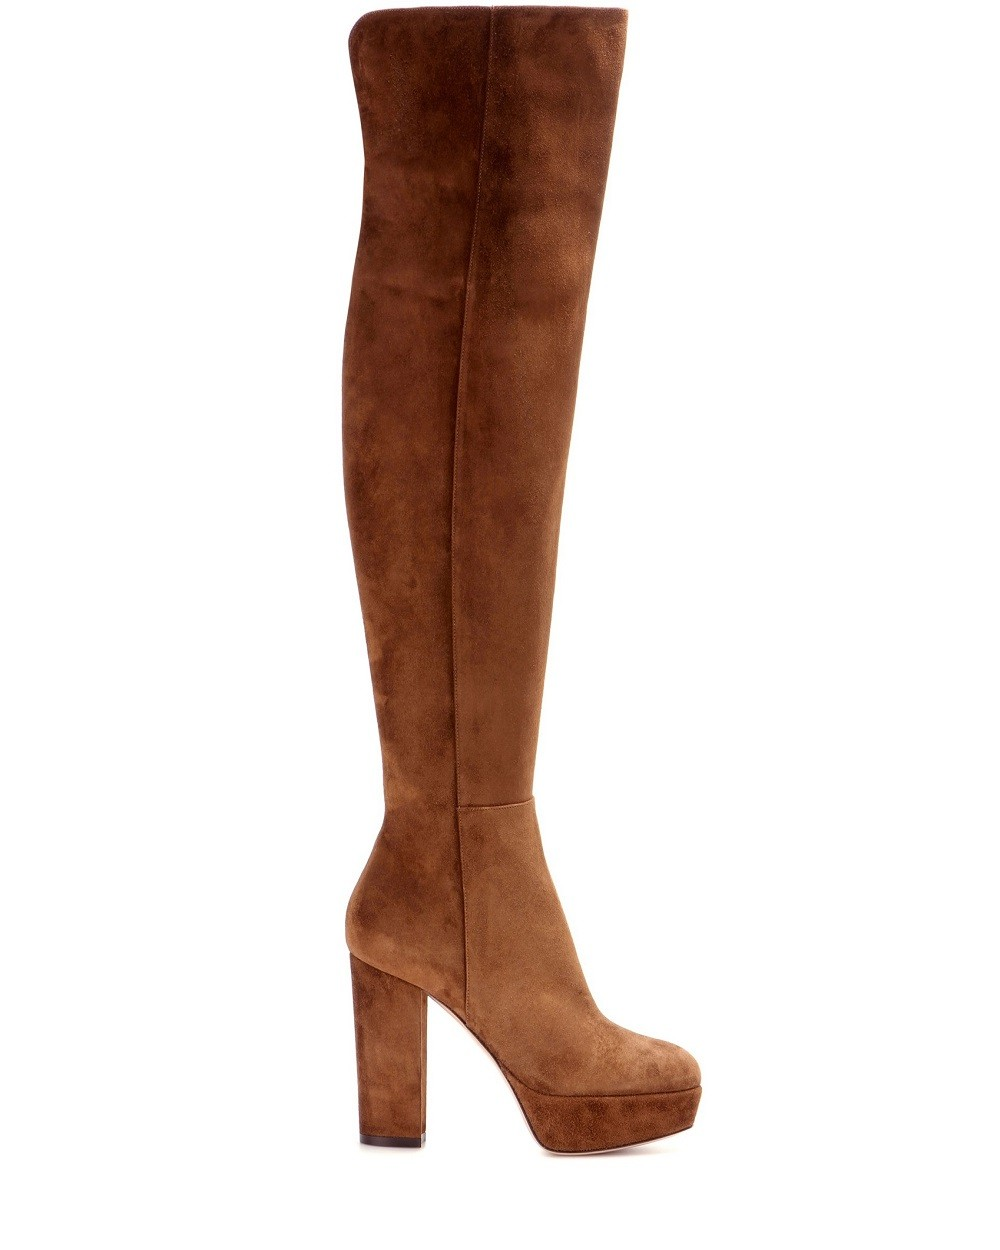 2021 Spring Women's Long Boot Brown Suede Platform Thick High Heels Knee Boots Square Toe Over-the-knee Modern Boots Shoes Woman